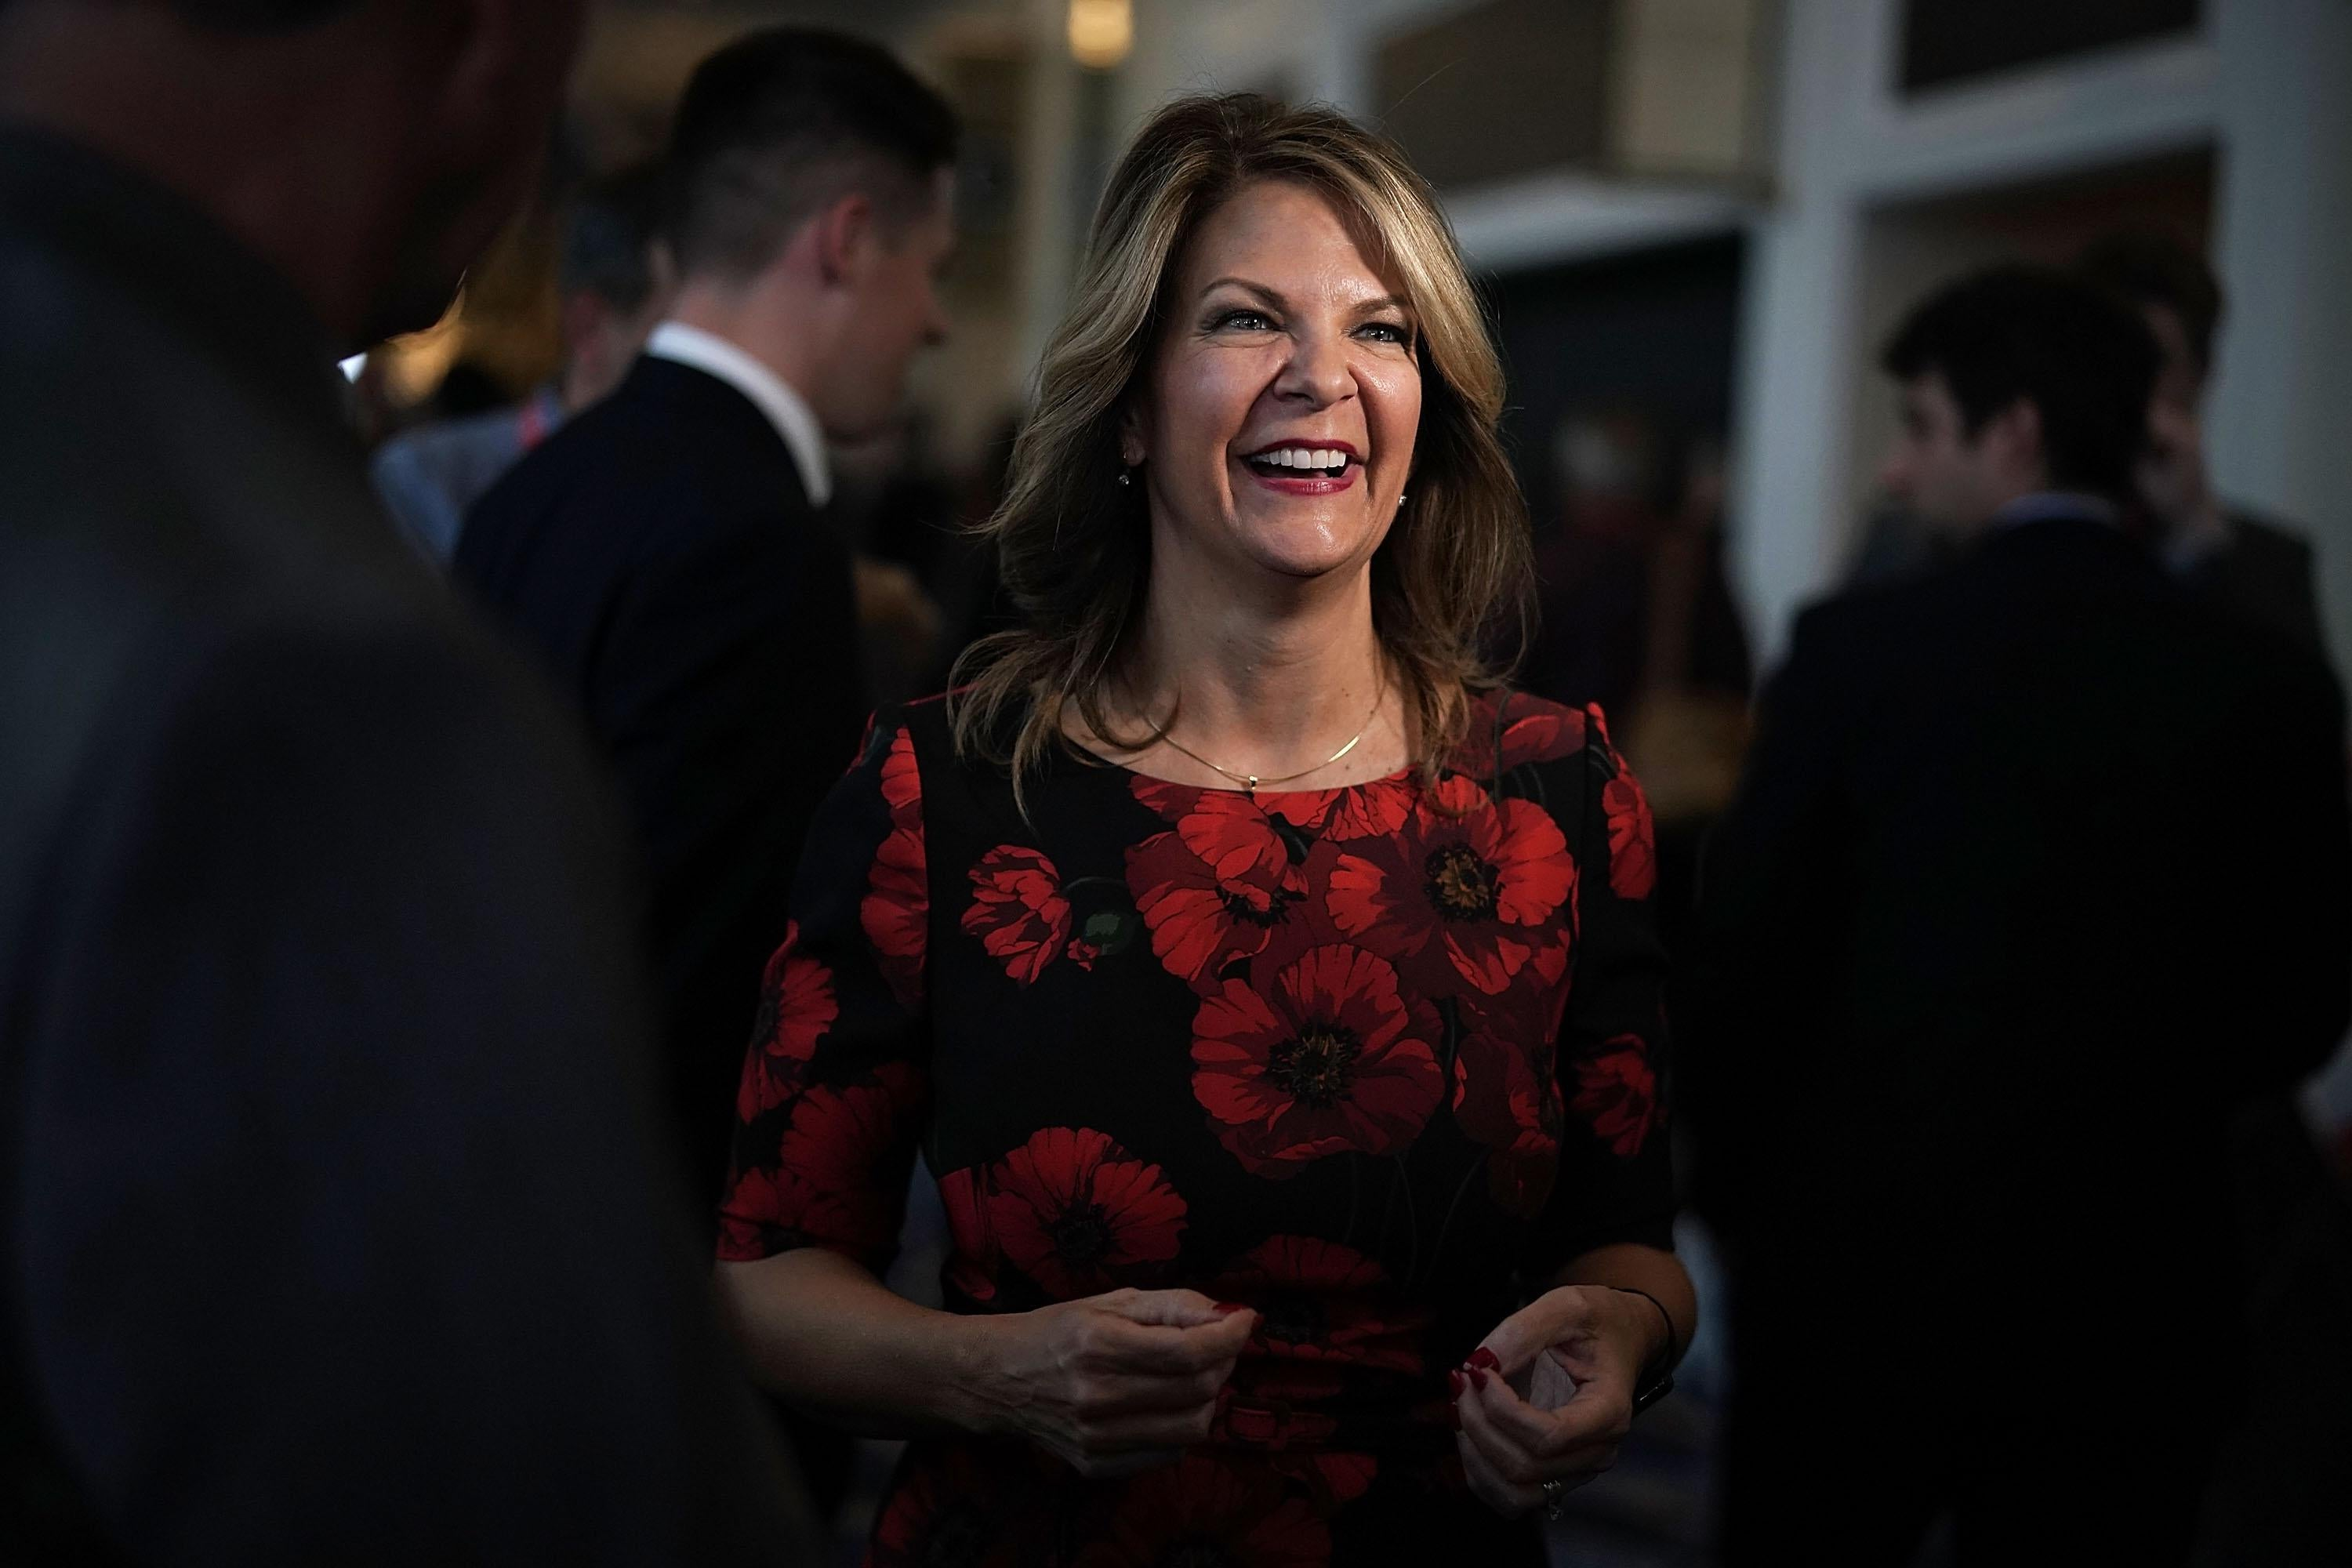 Kelli Ward in a crowd of people.